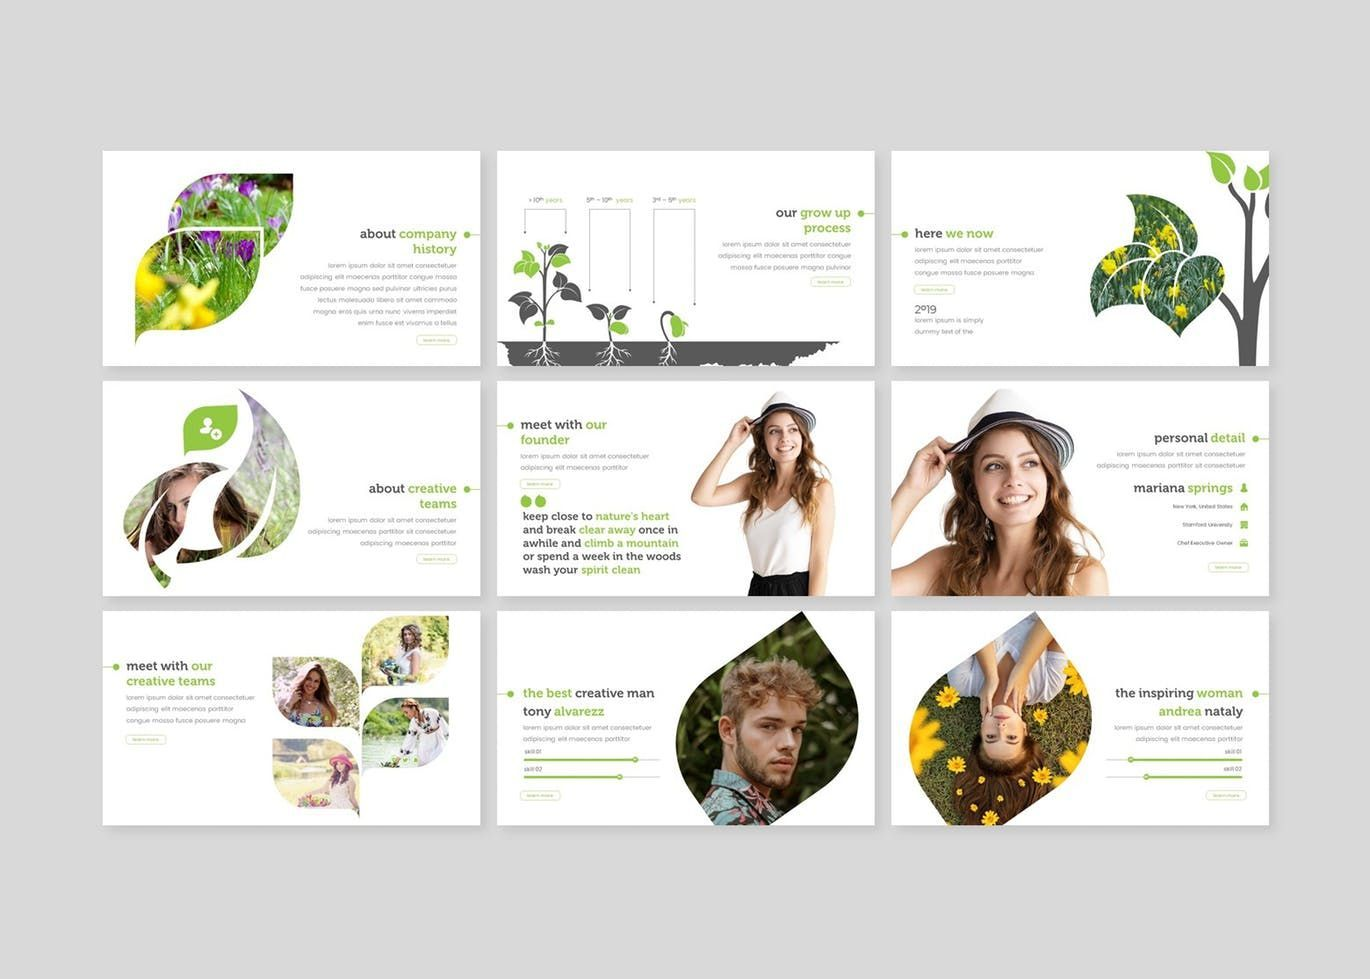 Inspring - Google Slides Template, Slide 3, 07738, Presentation Templates — PoweredTemplate.com